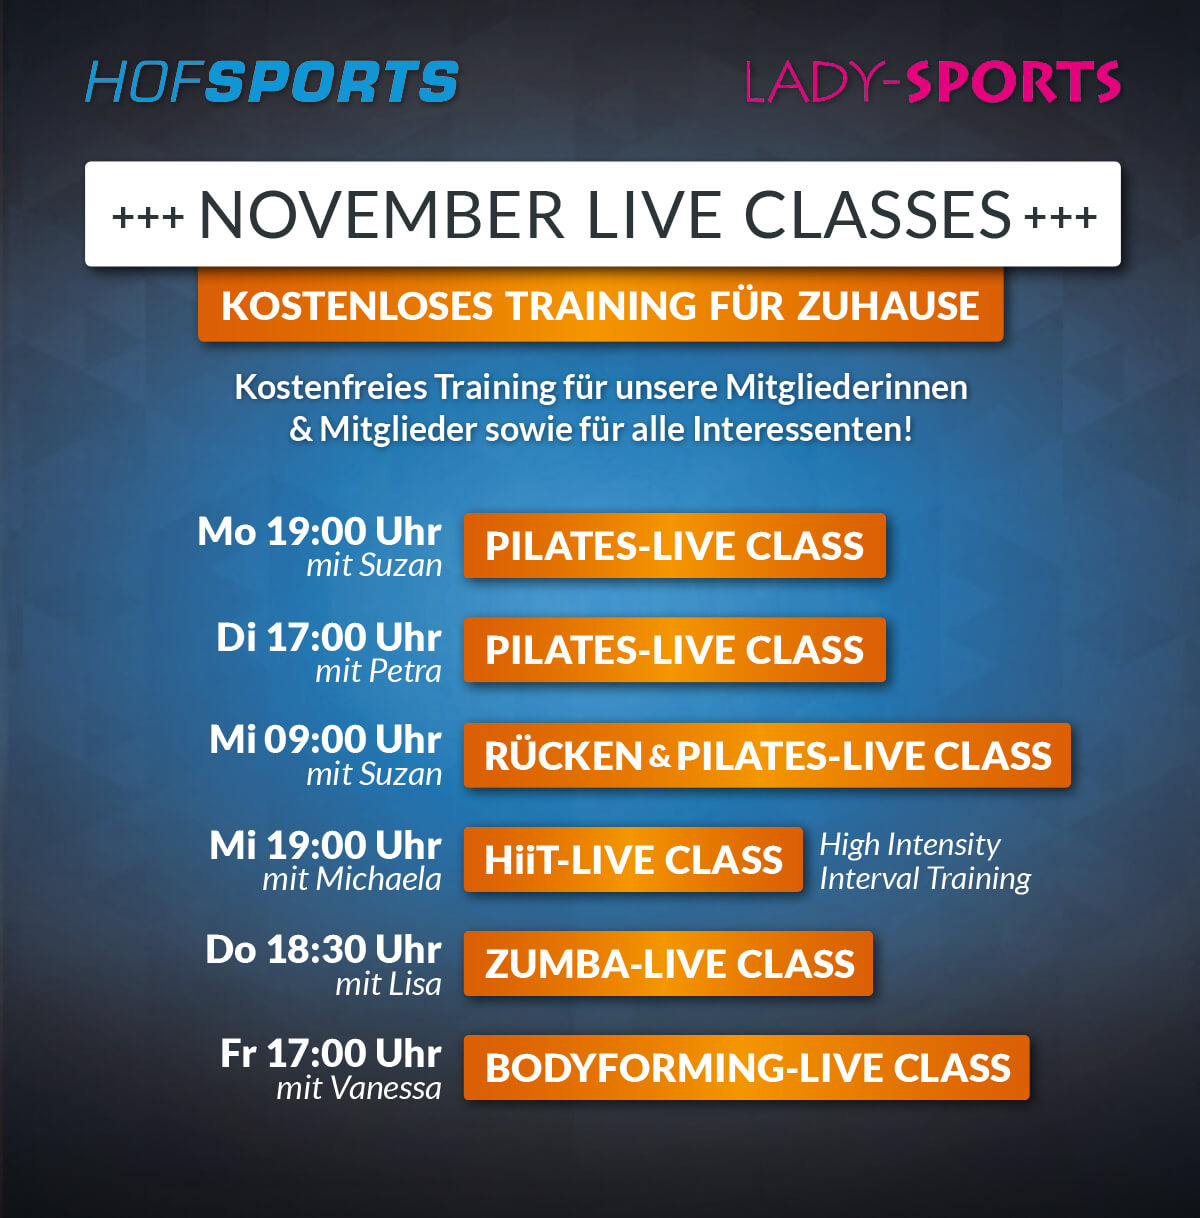 HofSports Lady-Sports Live-Classes Training für zuhause